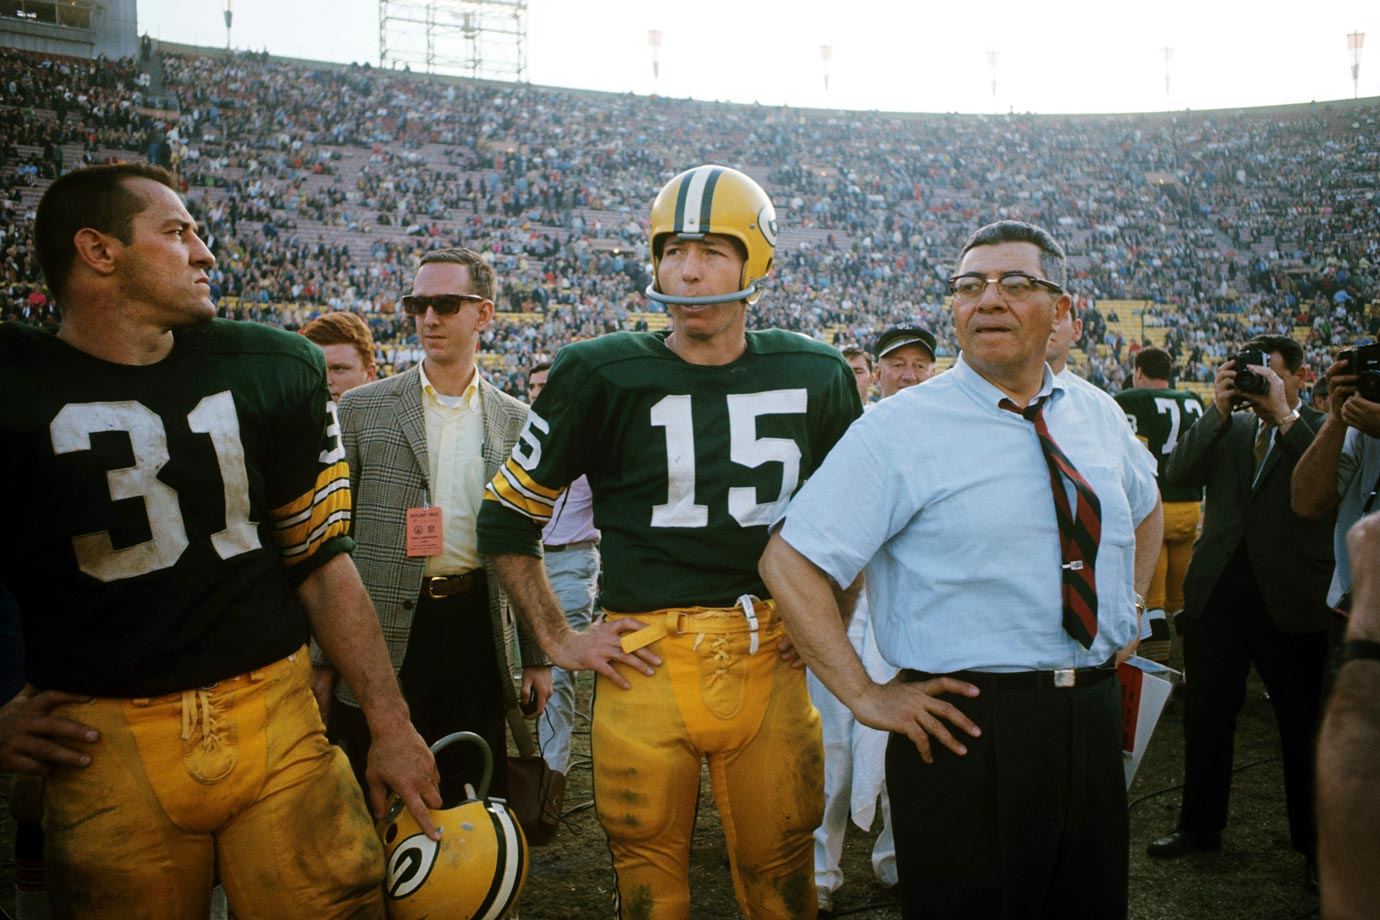 Quaterback Bart Starr and head coach Vince Lombard look on as their Green Bay Packers defeat the Kansas City Chiefs 35-10. After a close first half, the Packers scored 21 consecutive points to run away with the game.